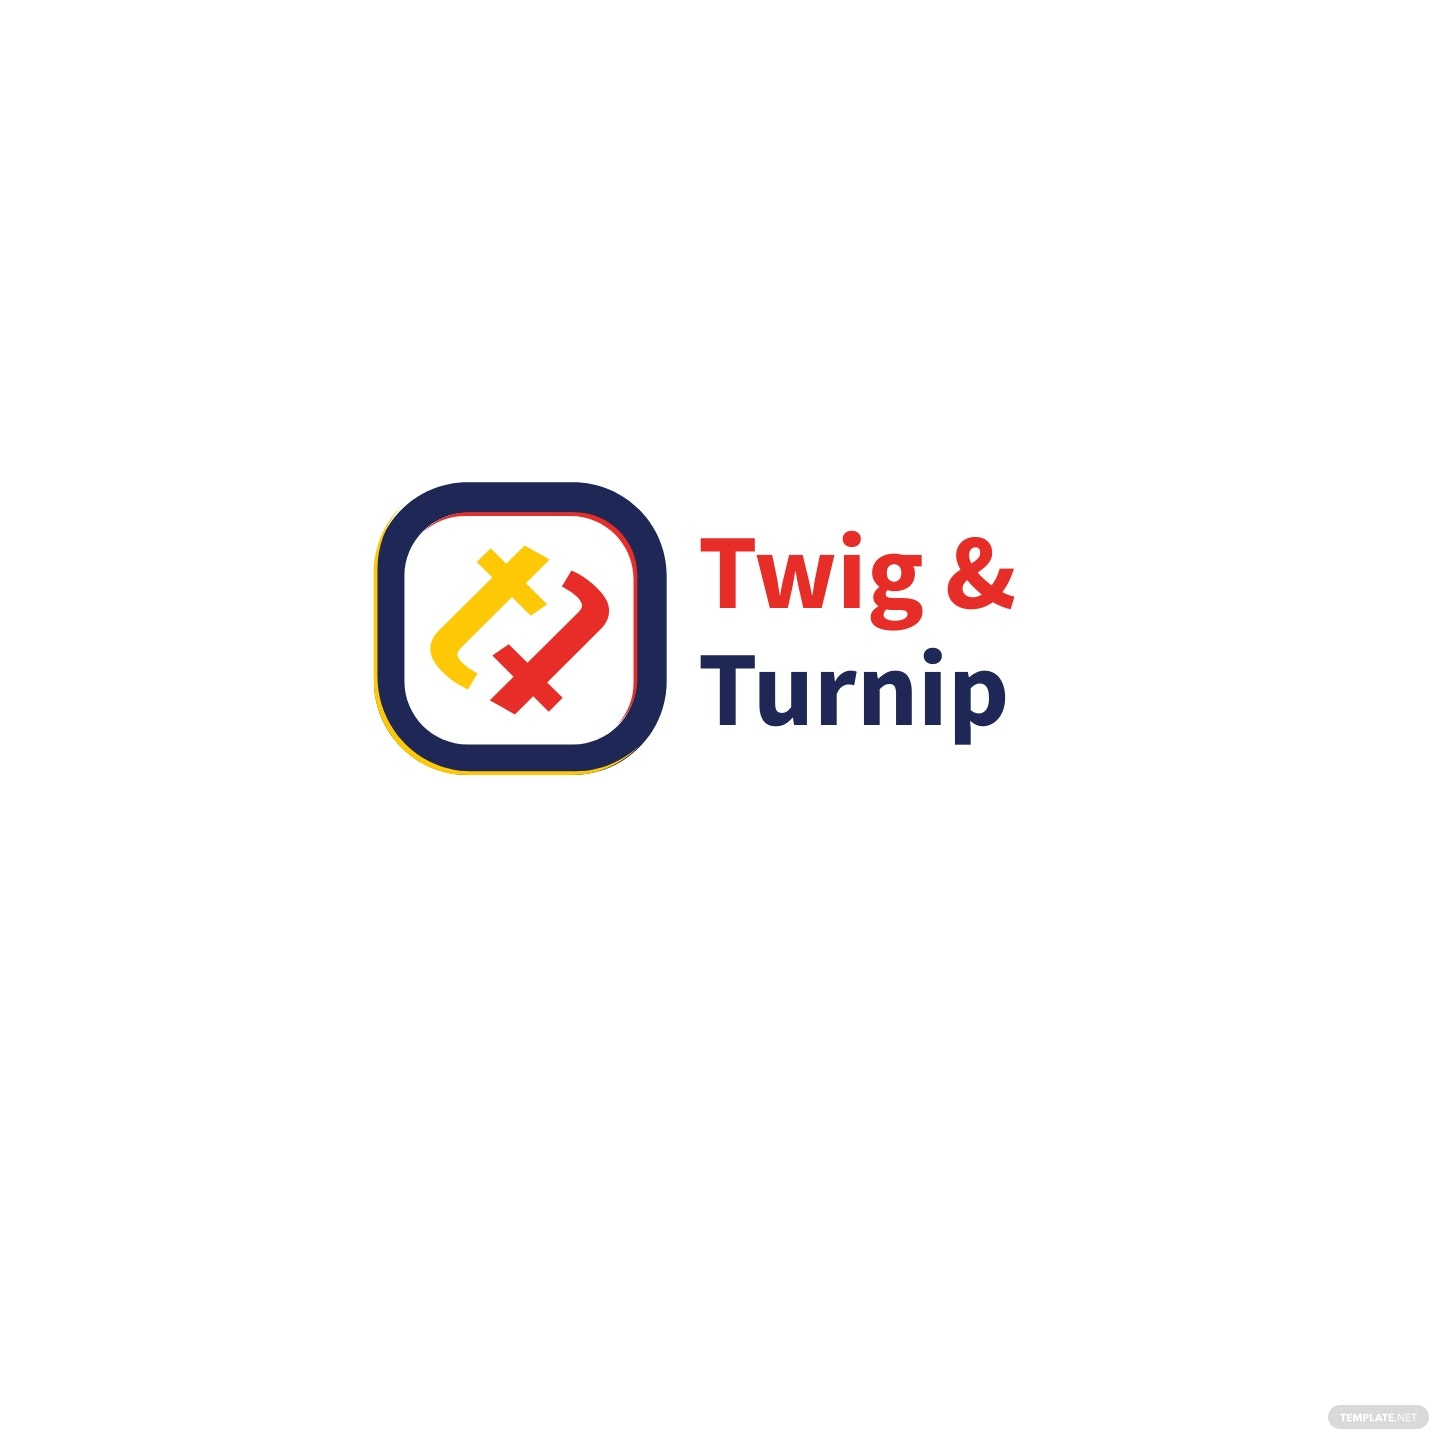 Twig & Turnip Logo Template